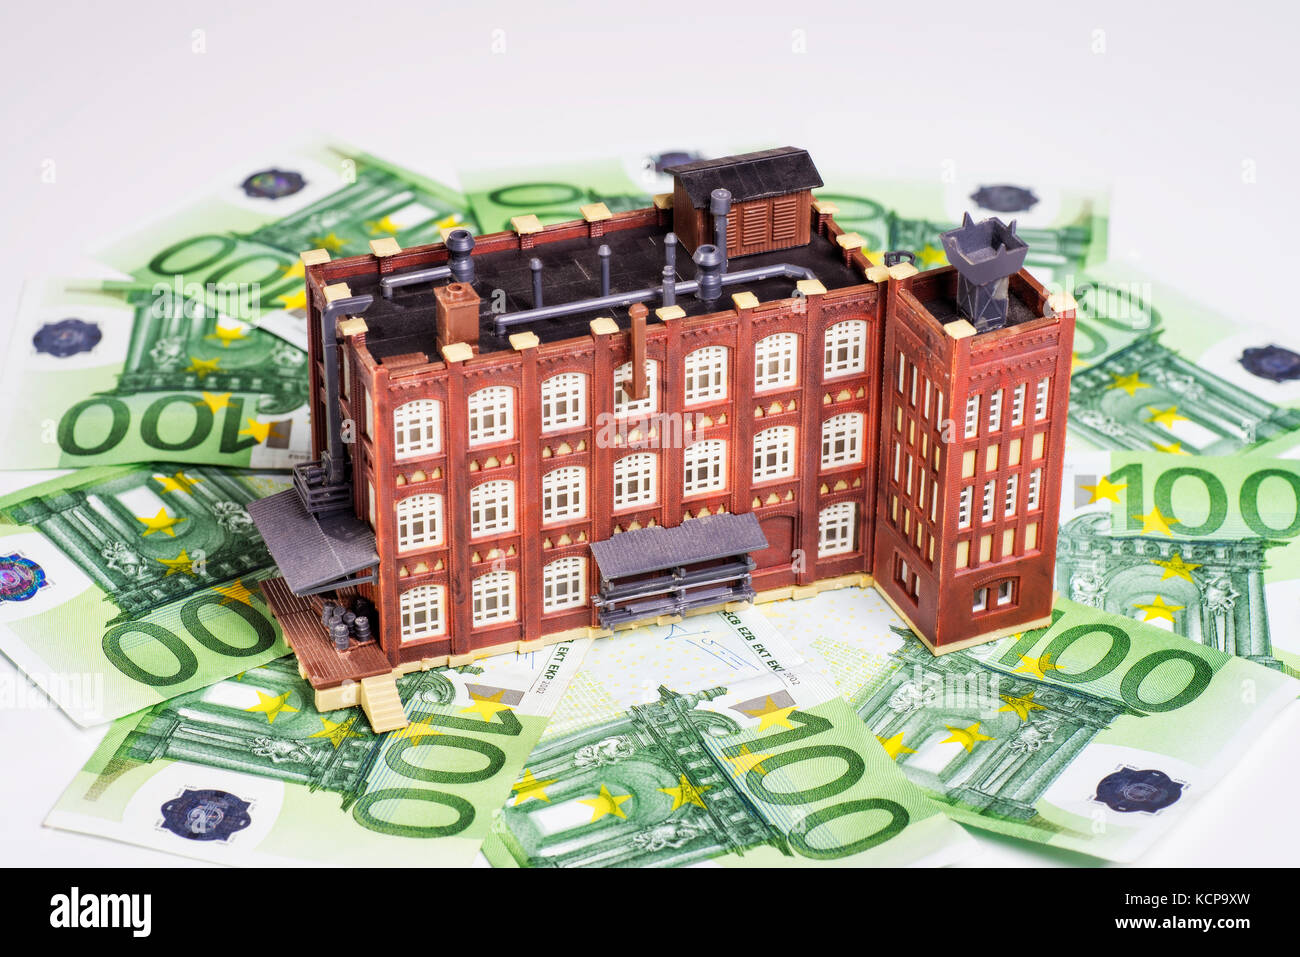 Factory building is surrounded by euro banknotes. - Stock Image